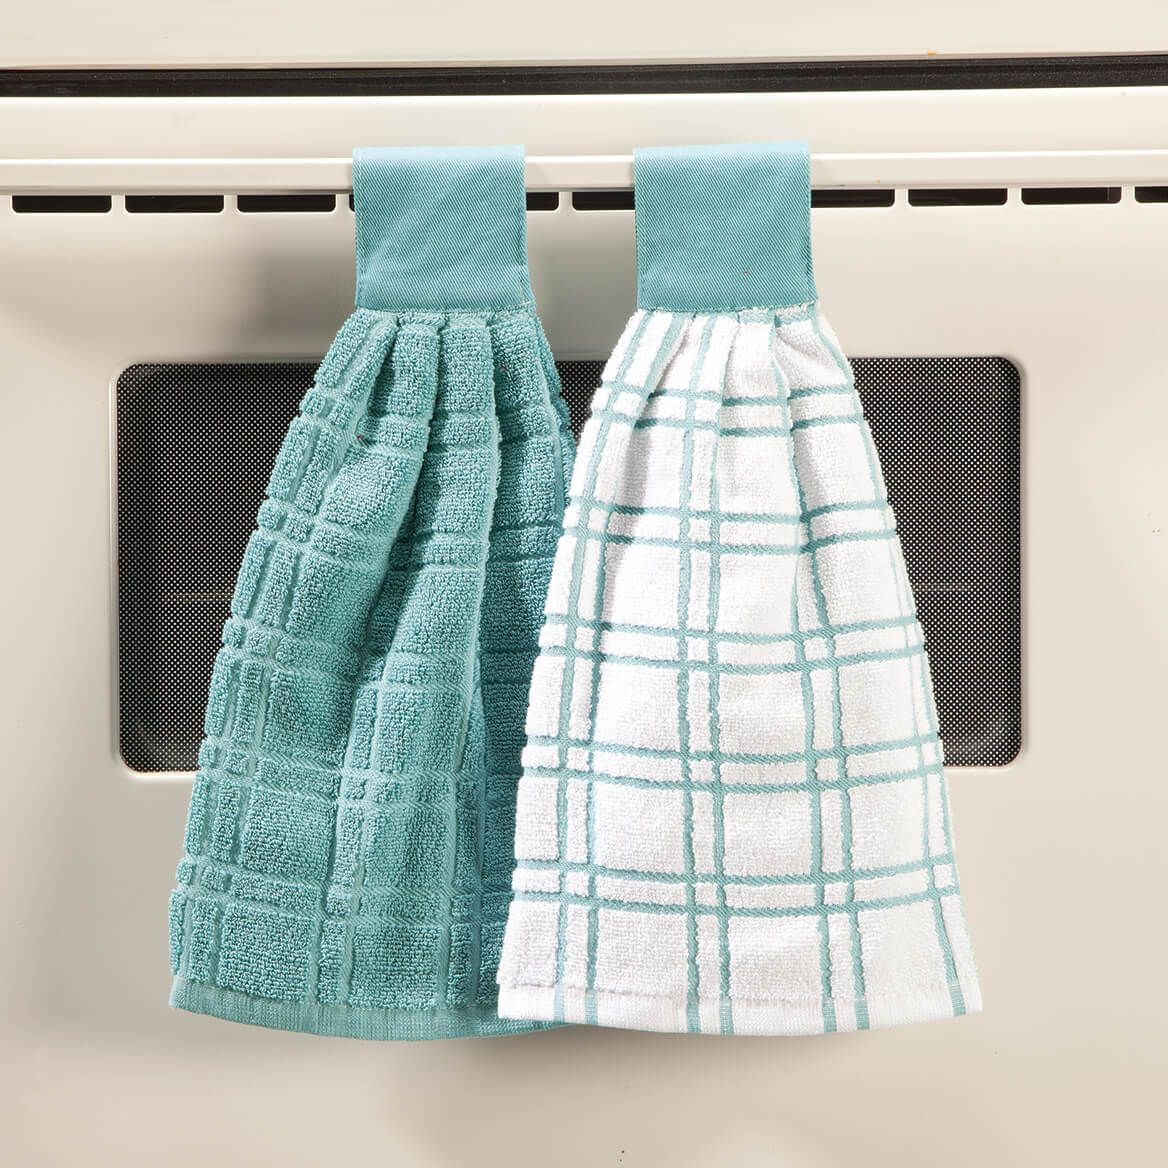 Cotton Hanging Towel Solid With Images Hanging Towels